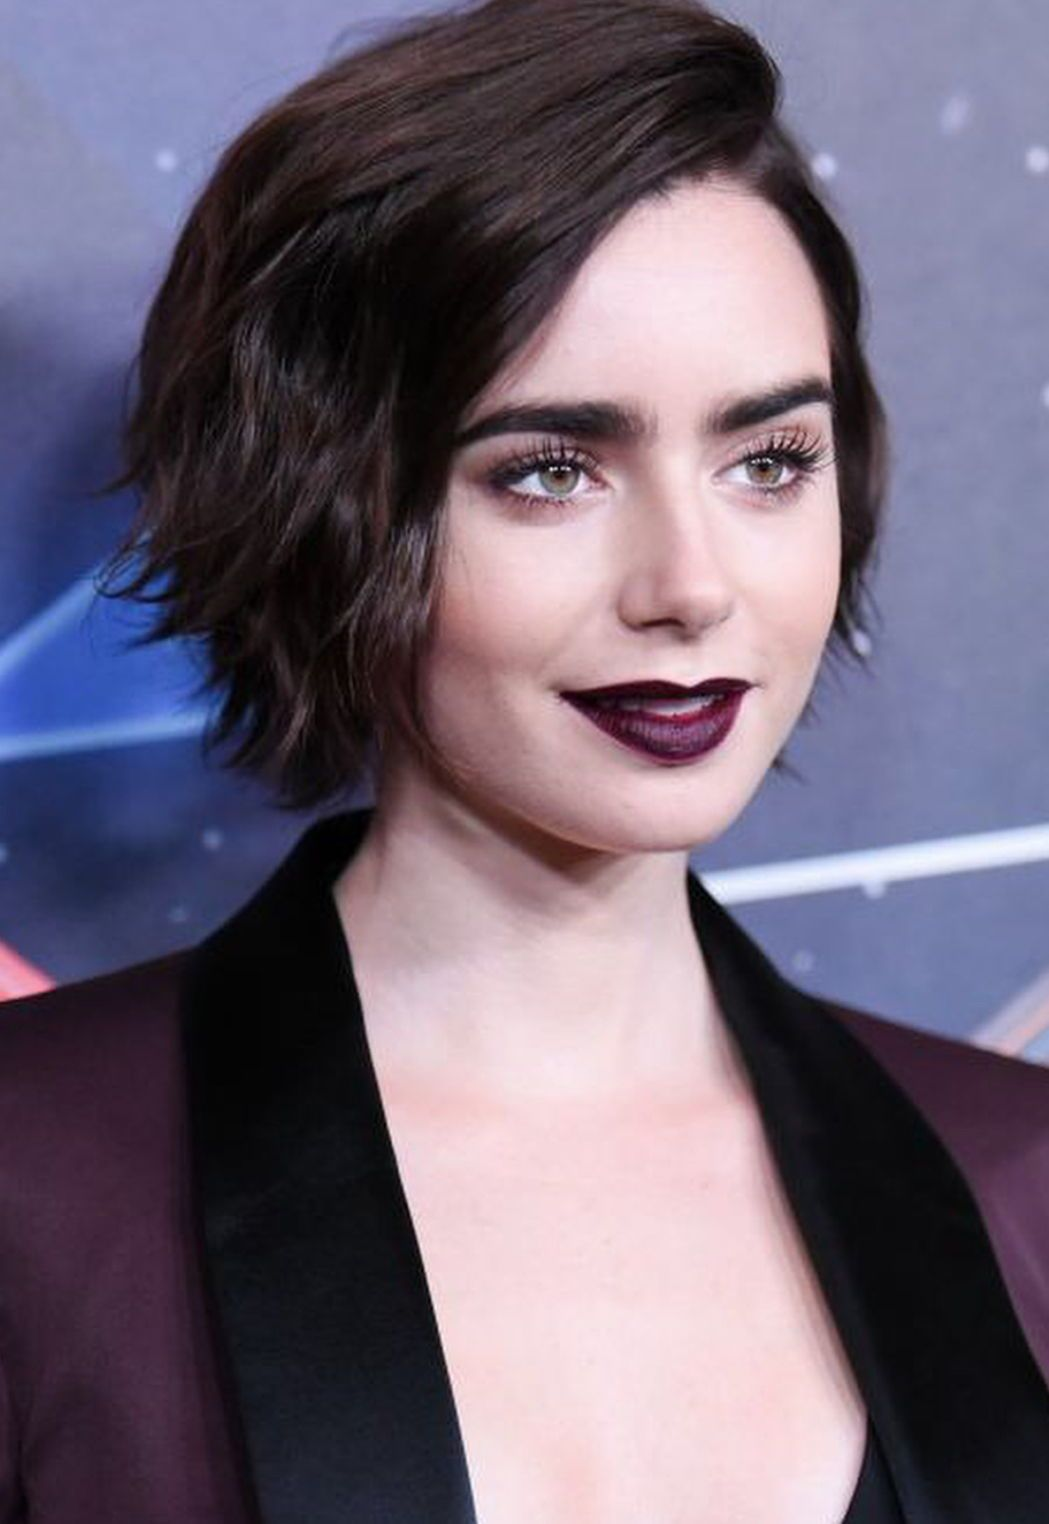 Lily Collins Dark Gothic Makeup Look And Short Hair Style Dark Makeup Looks Short Hair Styles Short Wedding Hair